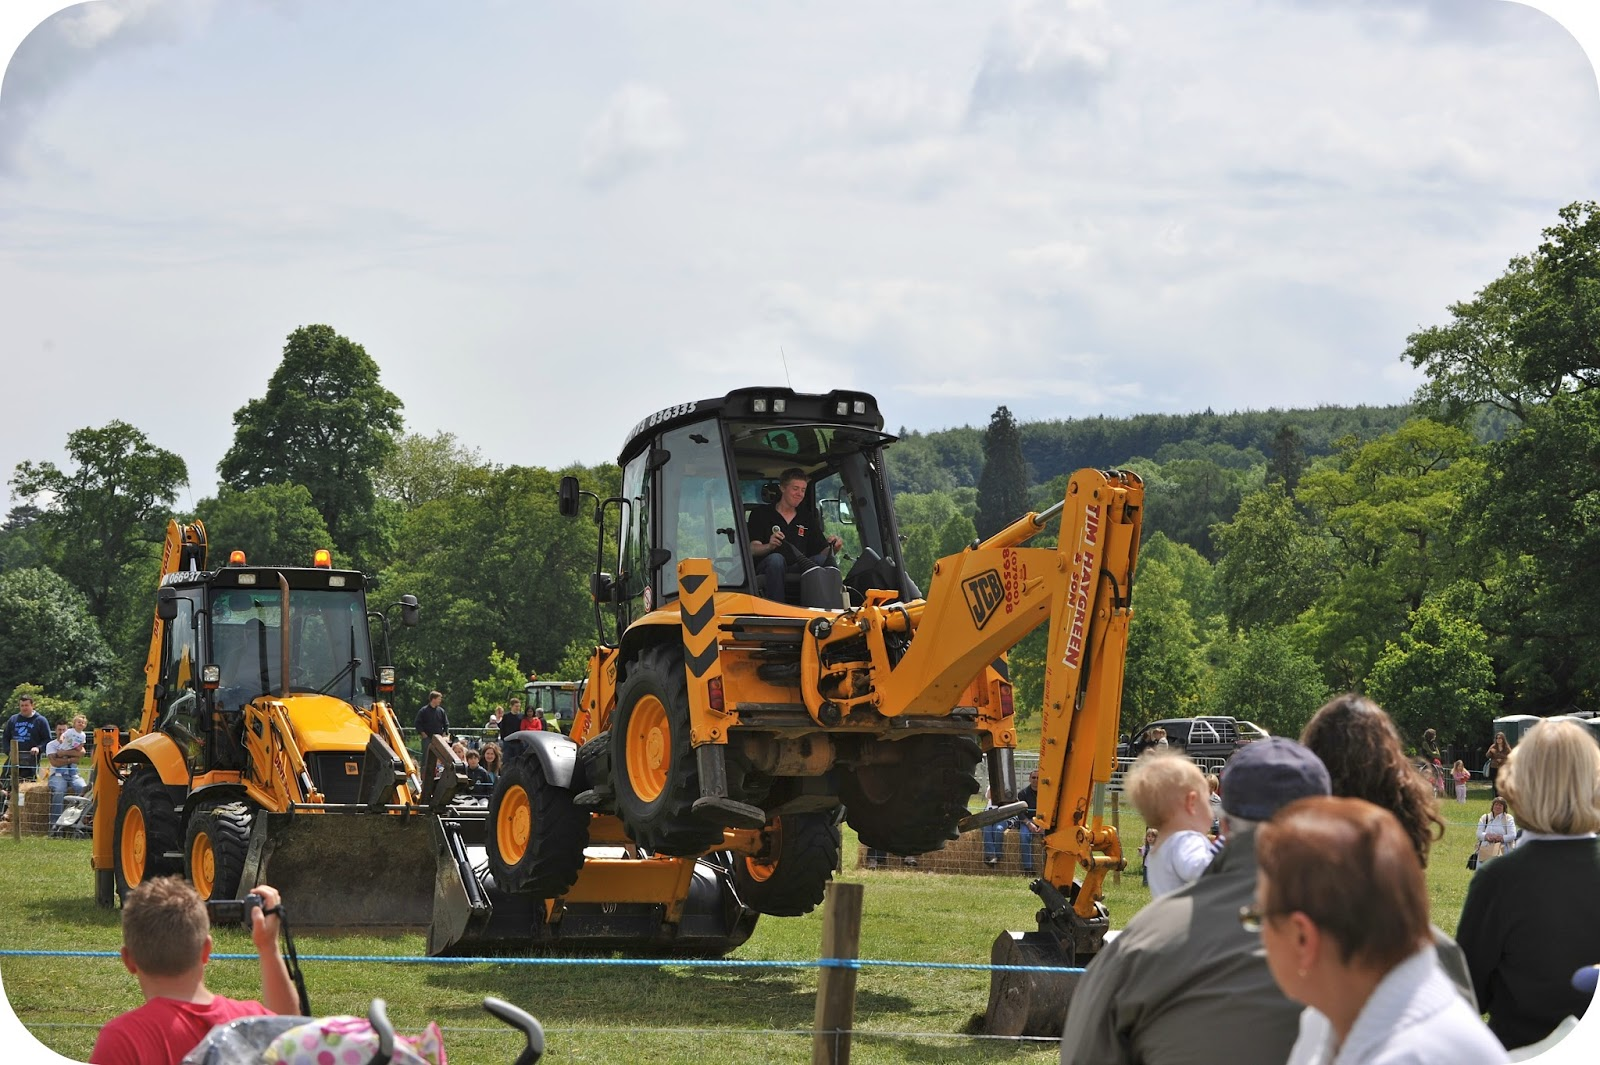 Win a Family Ticket to Tractor Ted's Big Machines Weekend at Bowood House